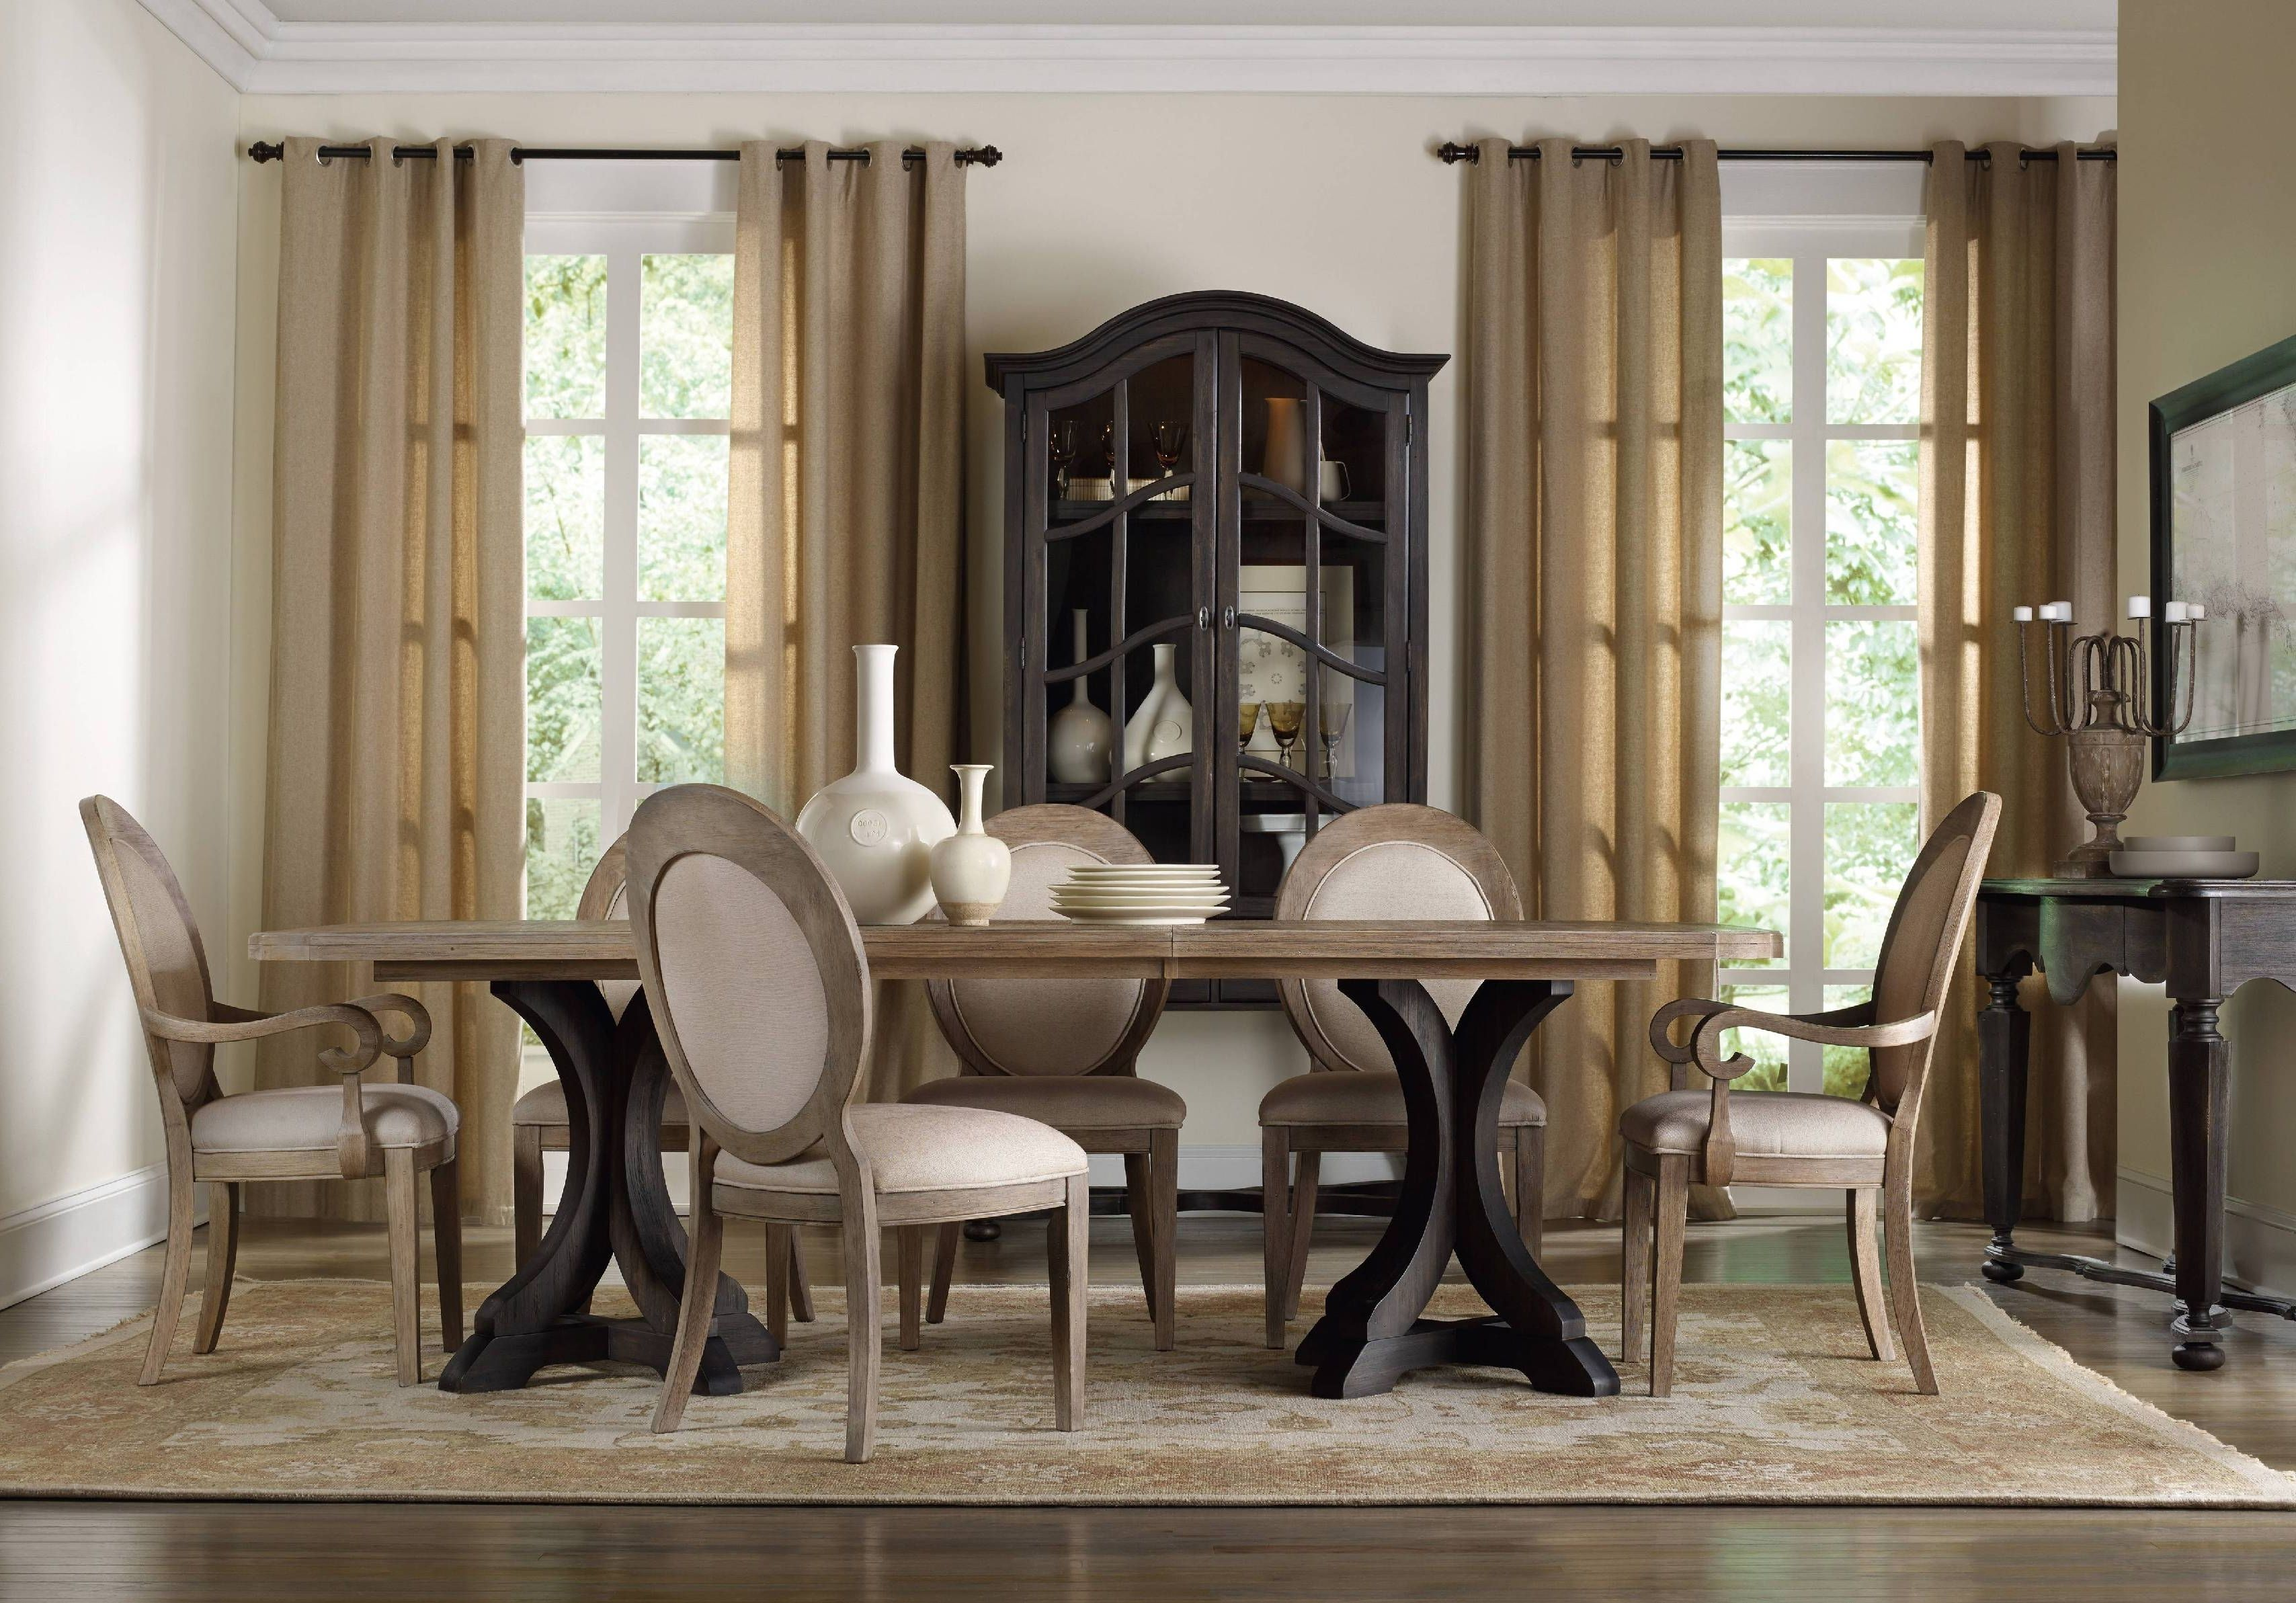 Light Dining Chairs With Dark Dining Table Side Chairs Dining Dining Room Sets Upholstered Dining Chairs